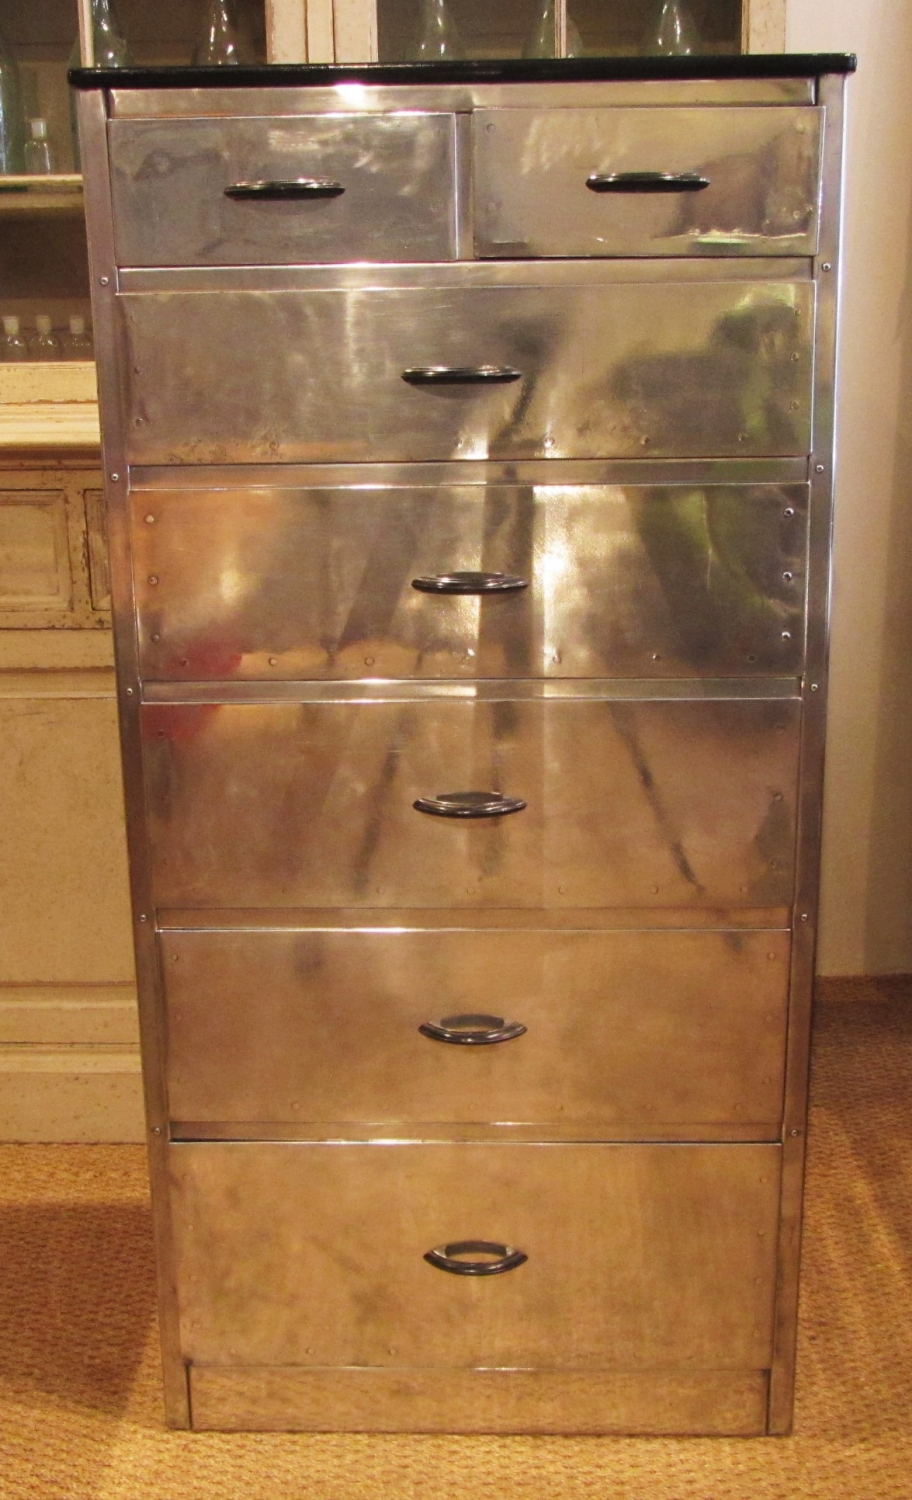 An Aluminium tall chest of drawers